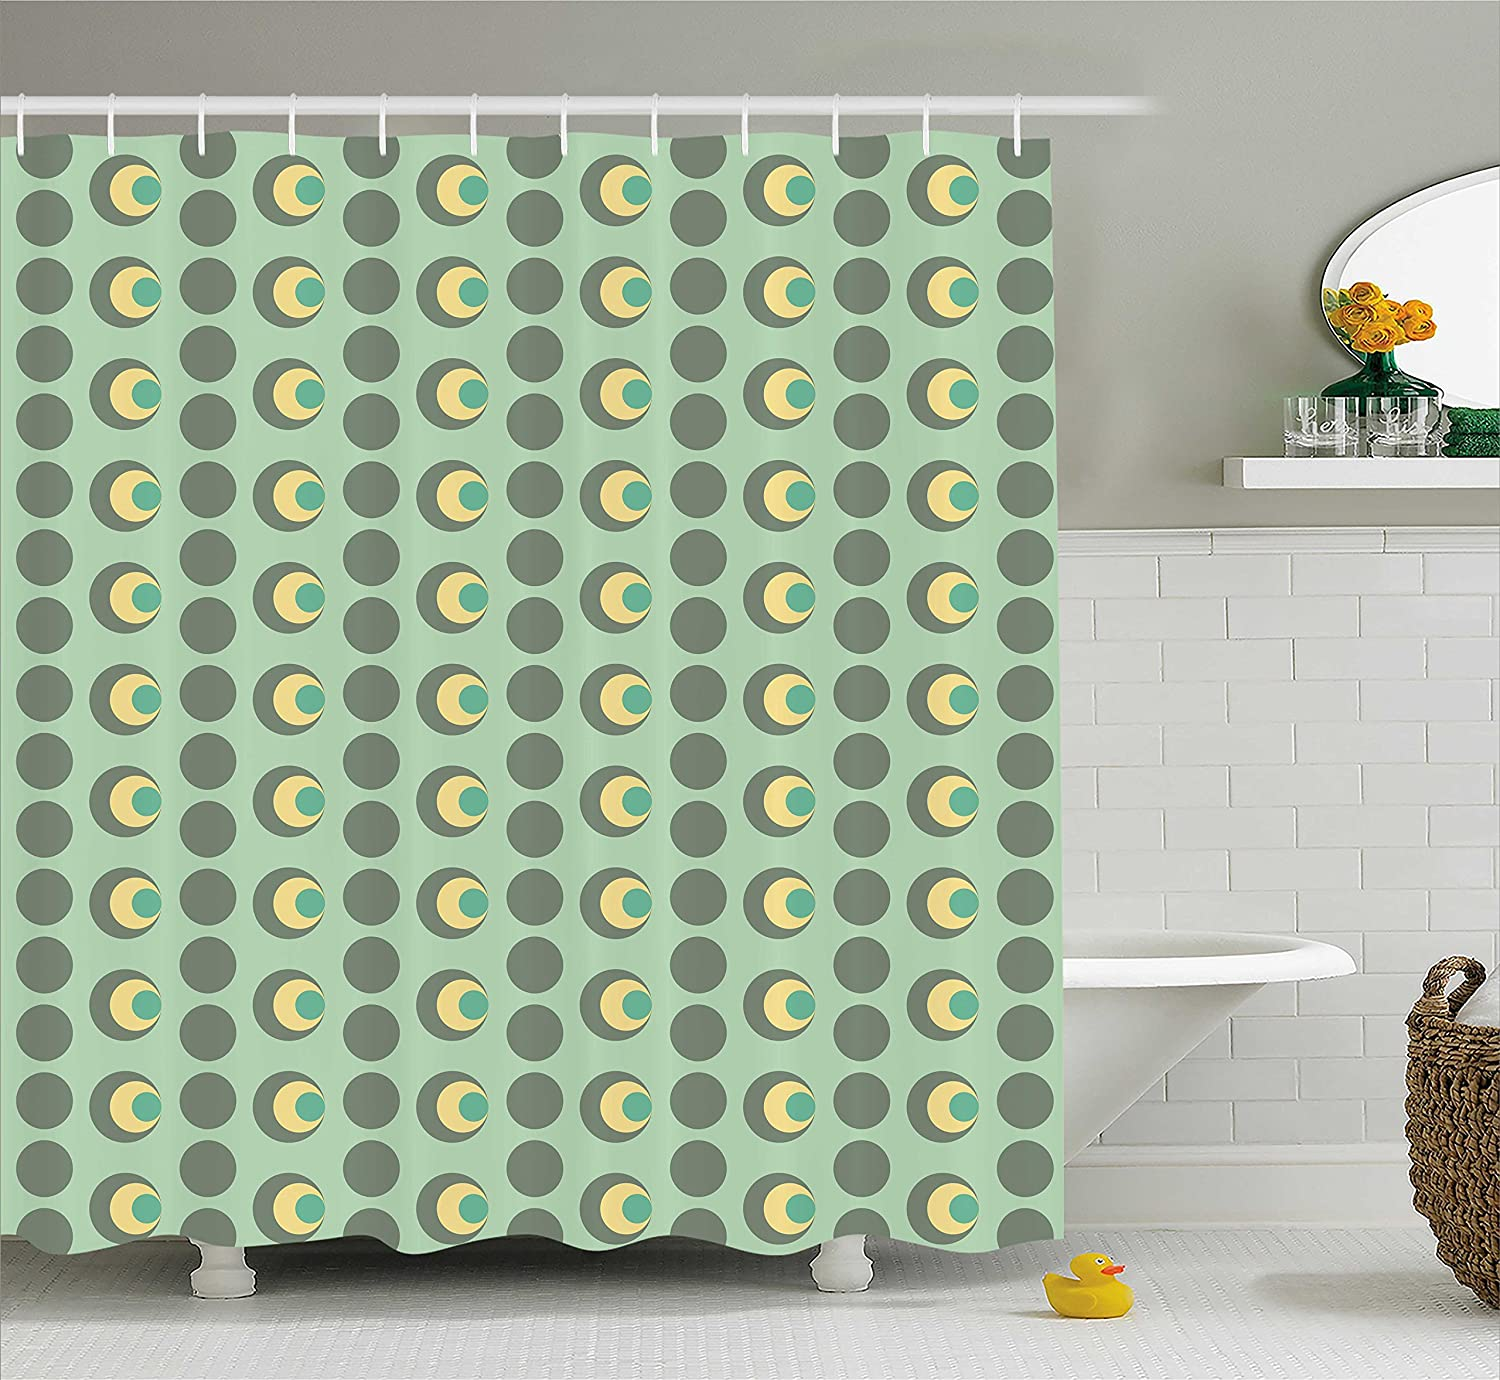 Amazoncom Retro Shower Curtain By Lunarable, Nested Circles Dots Half